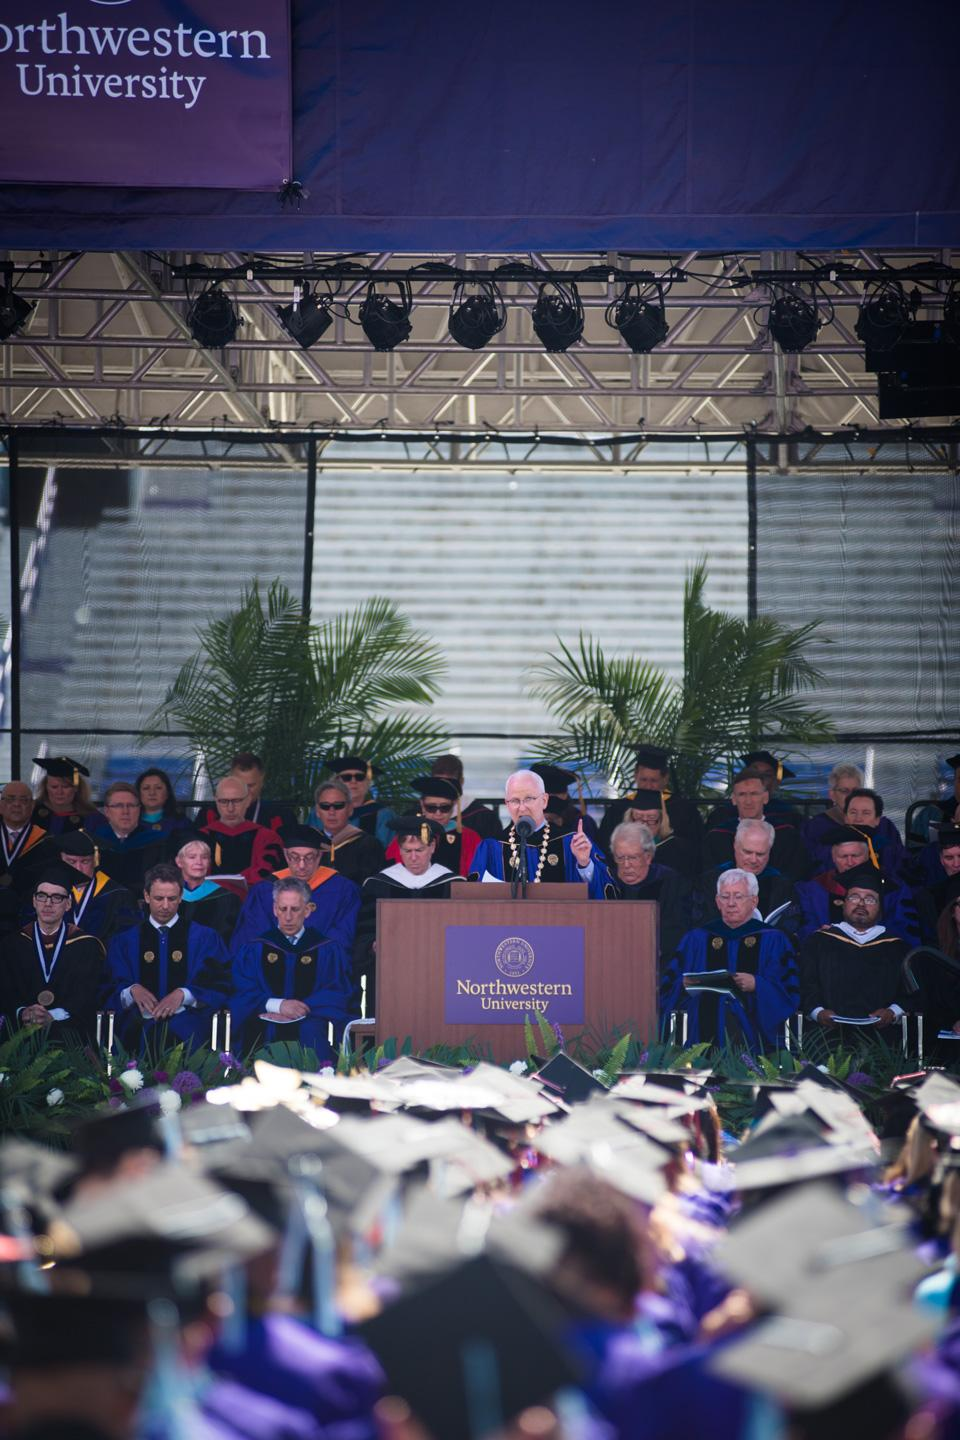 Schapiro addresses the crowd during the ceremony. This was Schapiro's 7th commencement ceremony as president of the University.